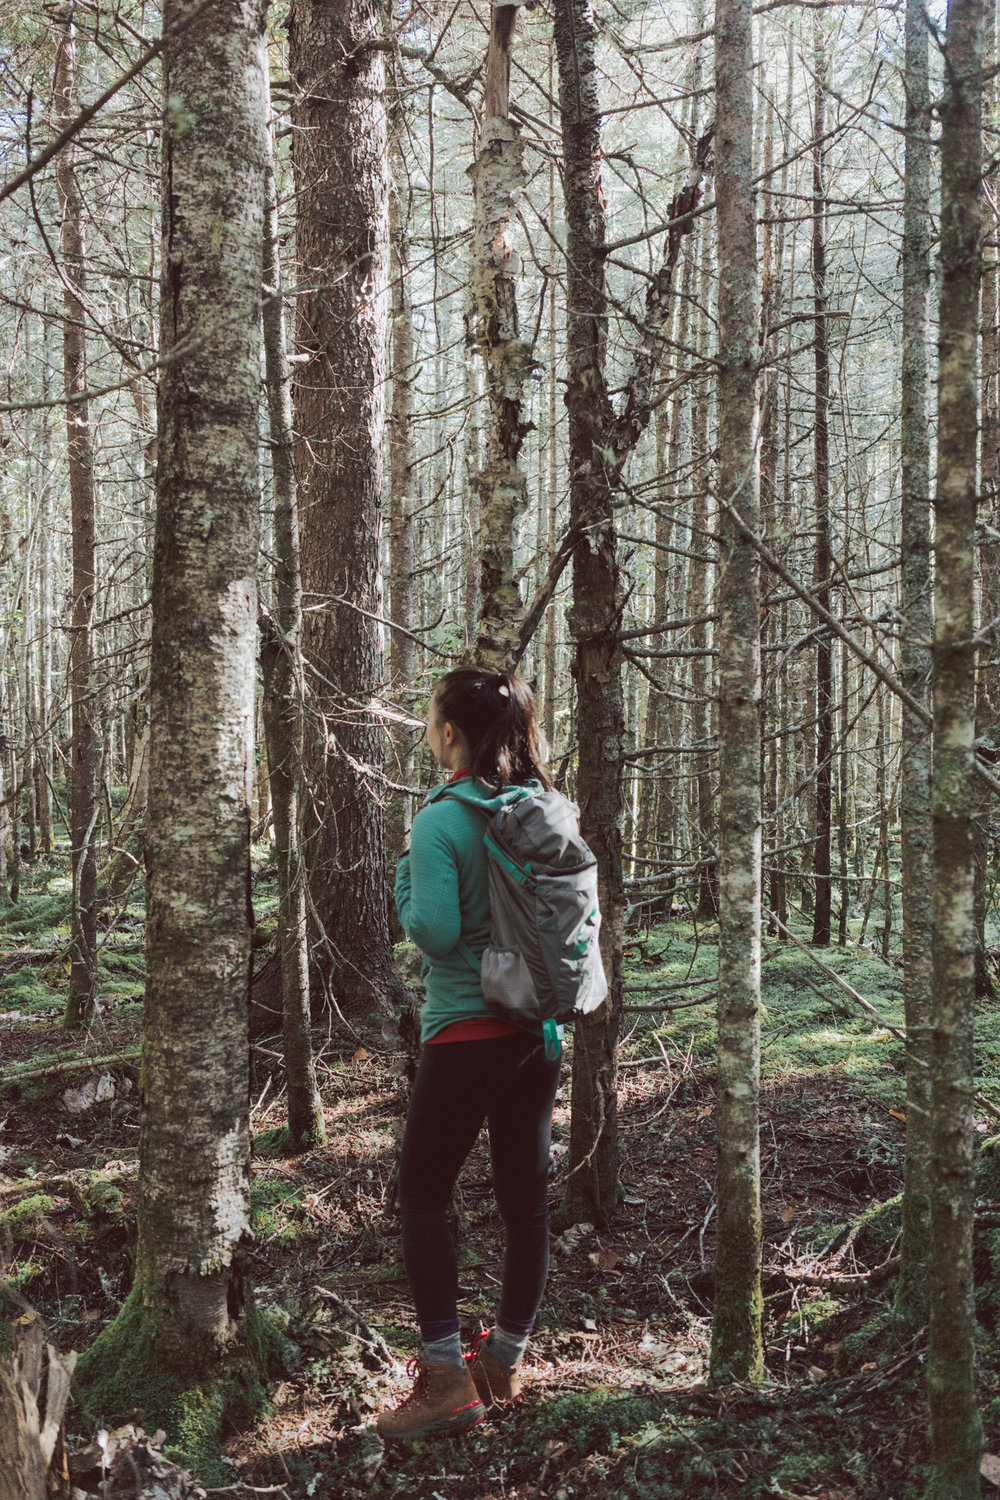 Guide Road Trip in #Maine Things to do - Go on an invigorating hike! The highlight of our trip to Maine was hiking the Fairy Head Trail on the Cutler Coast Public Reserved Land.